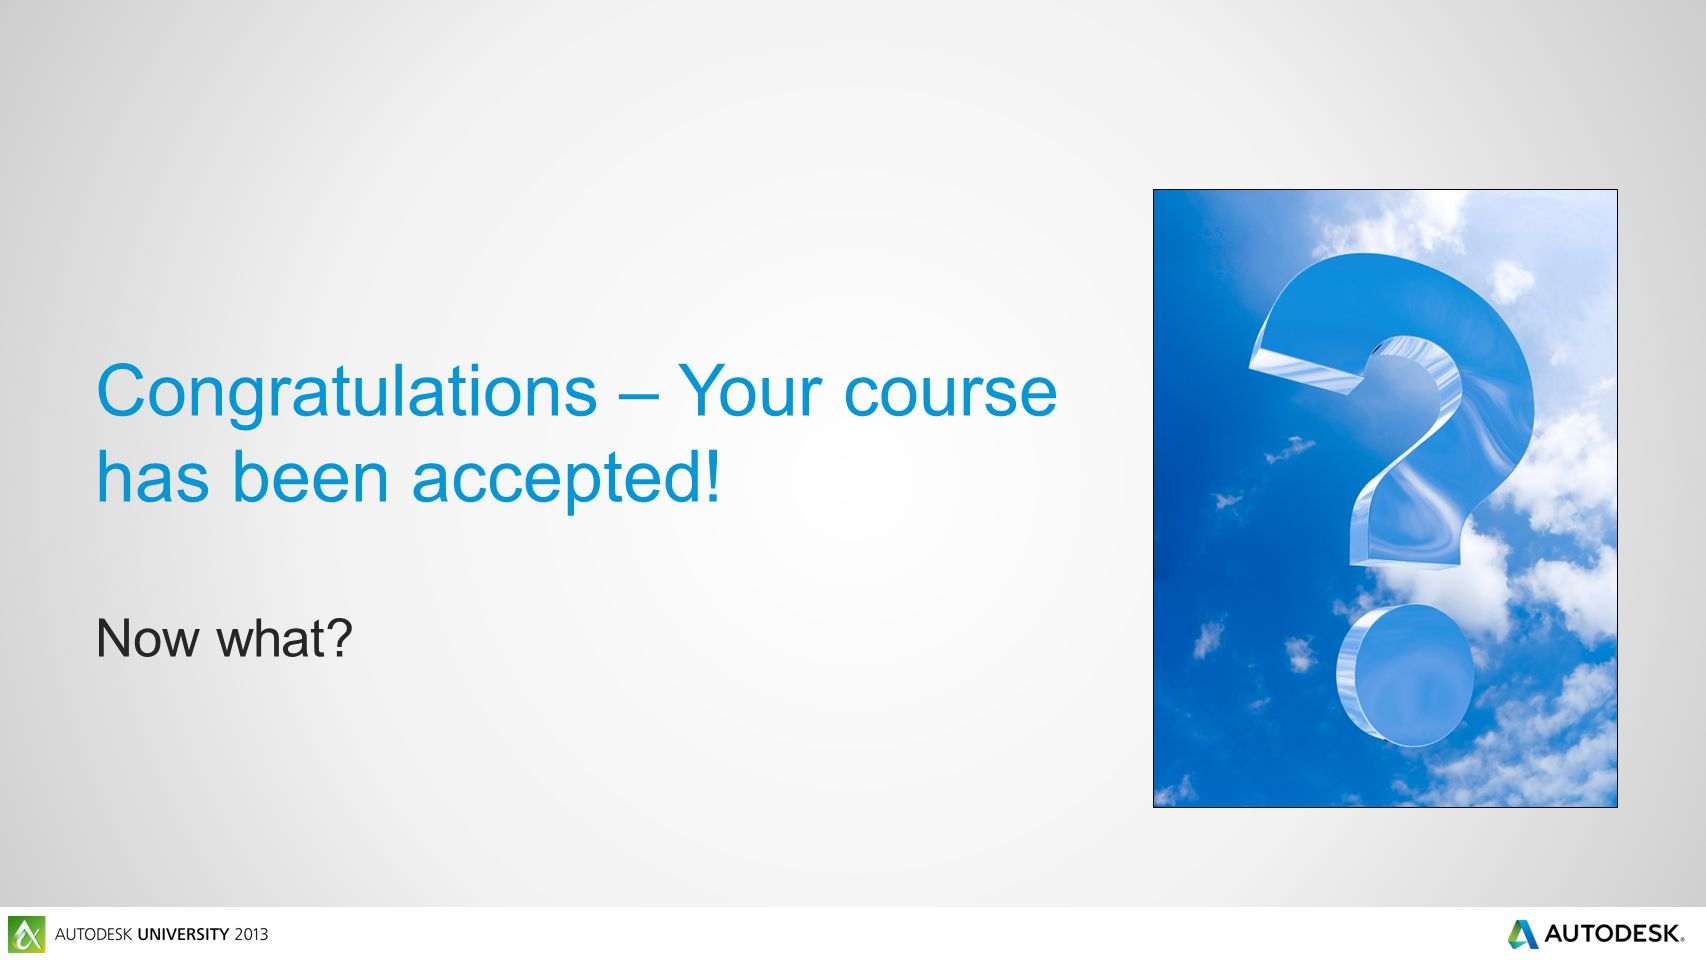 Congratulations – Your course has been accepted! Now what